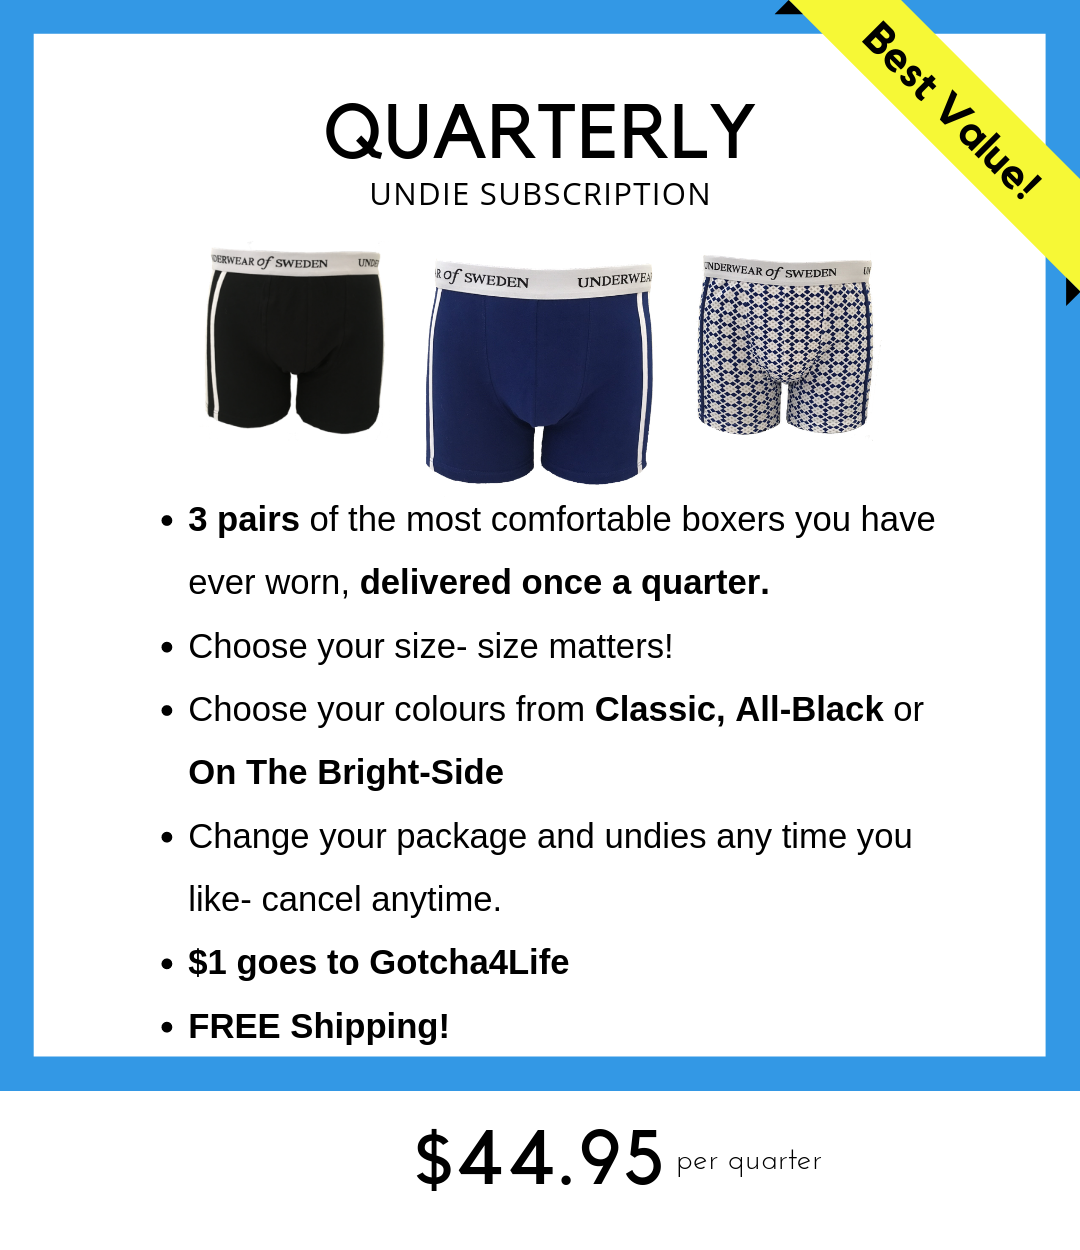 Quarterly undie subscription